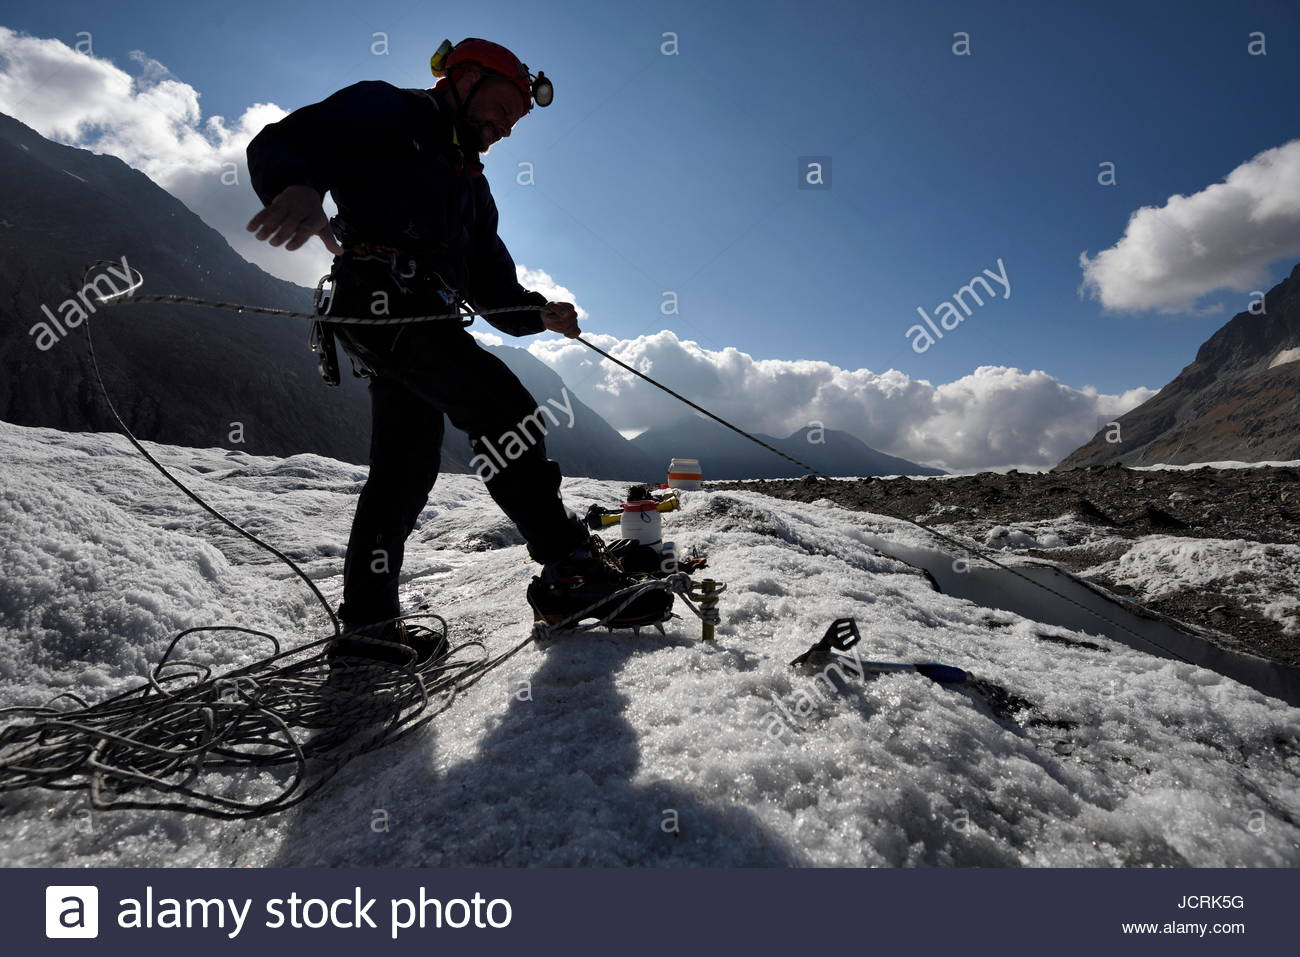 A cave explorer on the Aletsch Glacier in Switzerland. - Stock Image